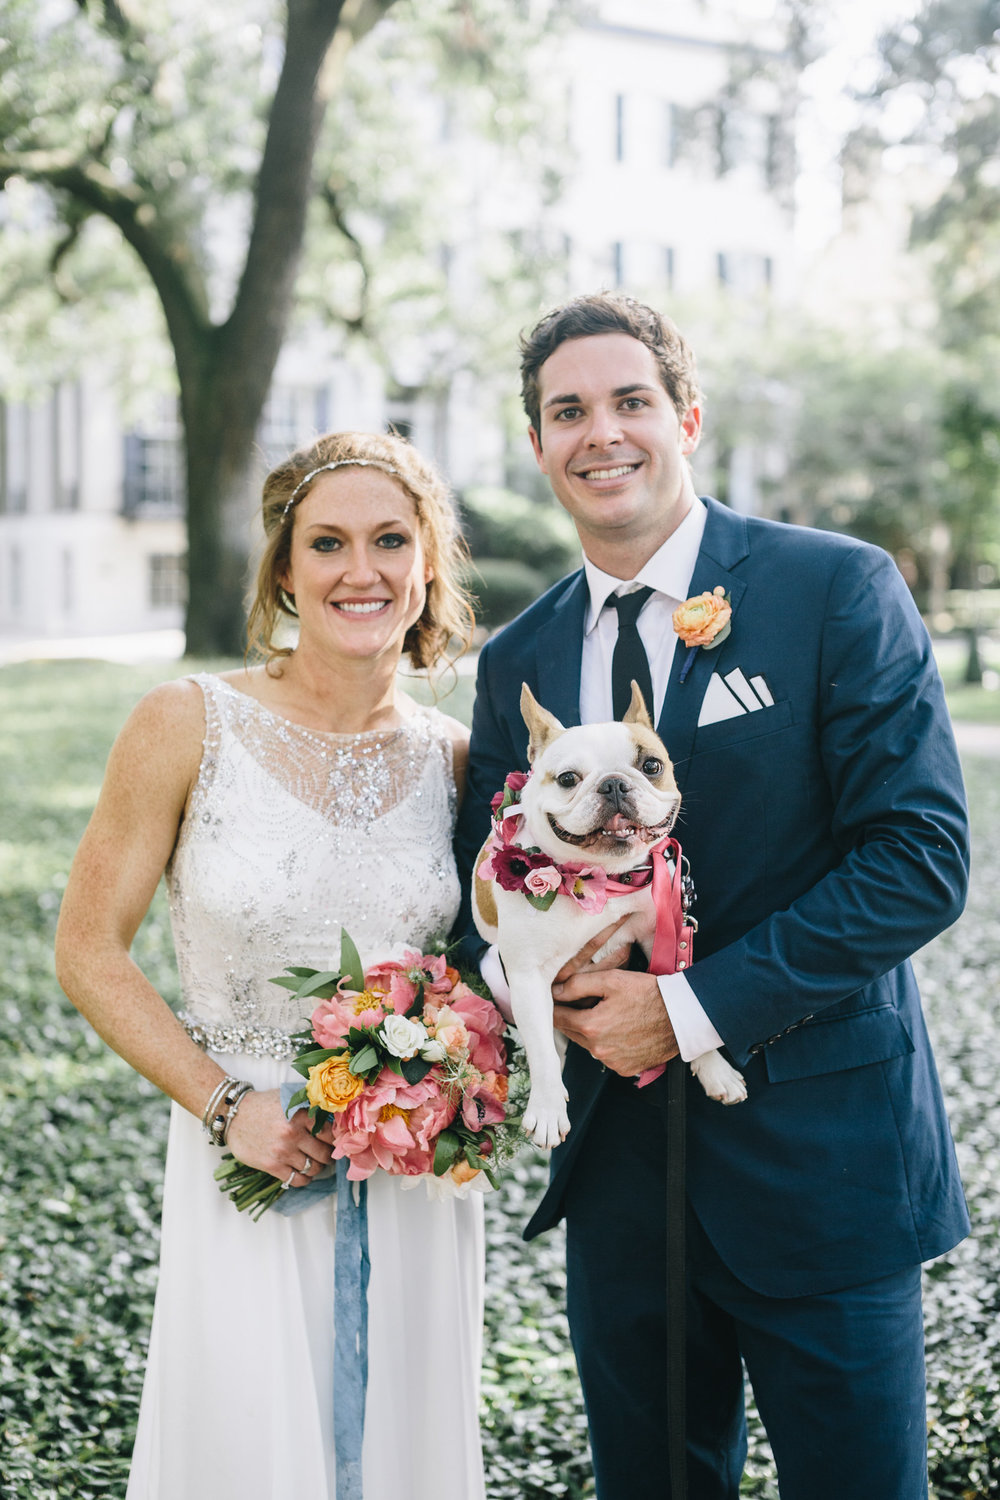 JORDAN'S PINK & BLUE FLORAL WEDDING WITH A PUP